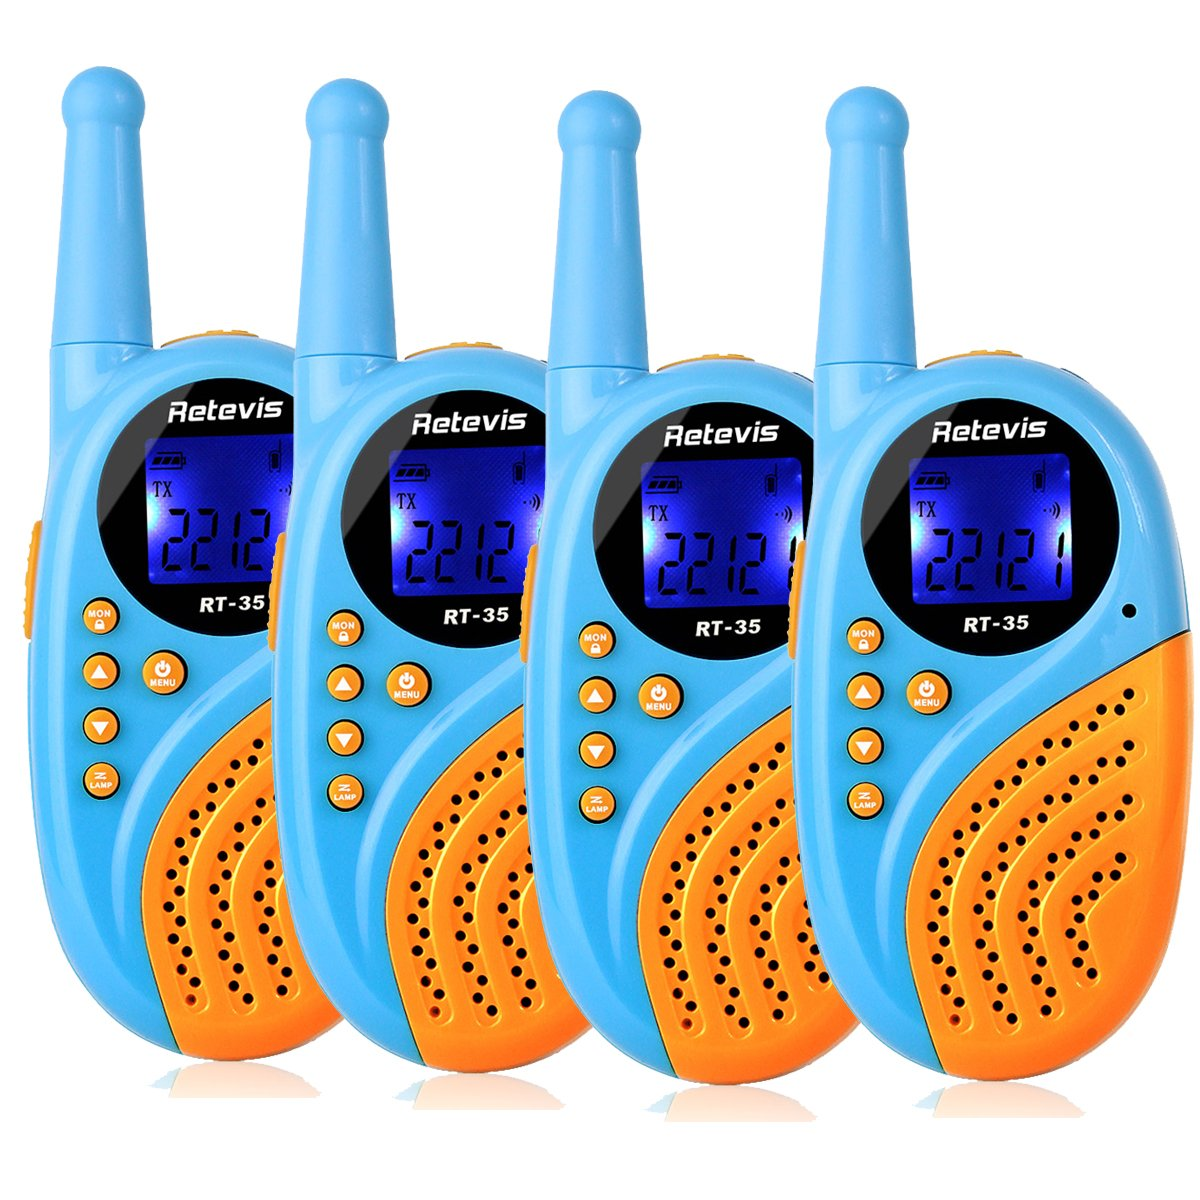 Retevis RT35 Walkie Talkies Rechargeable Mini Size VOX Flashlight USB Rechargeable License-Free 2 Way Radios with Digital Clock and Alarm Clock Function (Blue, 4 Pack)